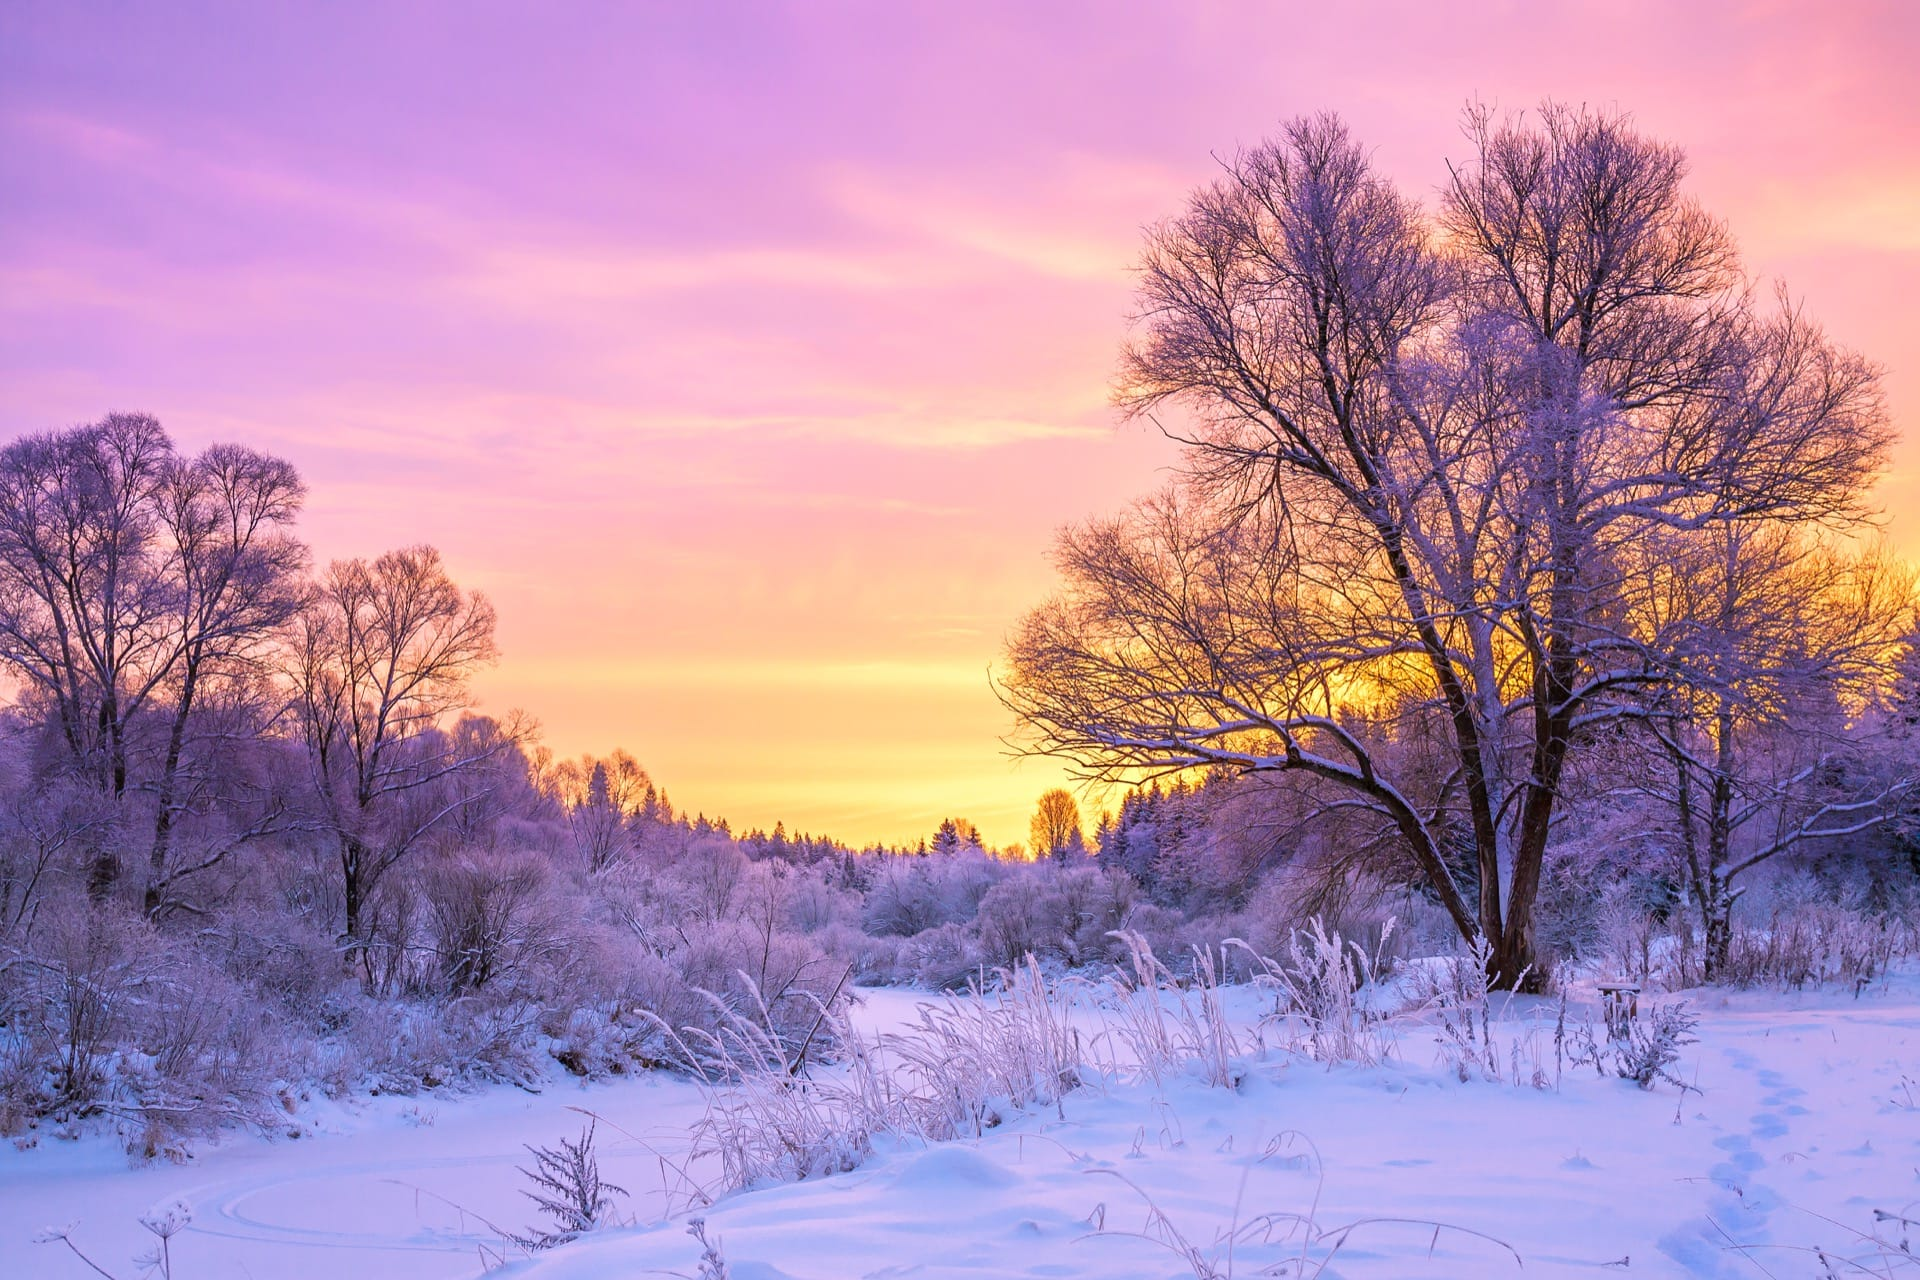 Cold winter landscape with snow and sunset - Your Health